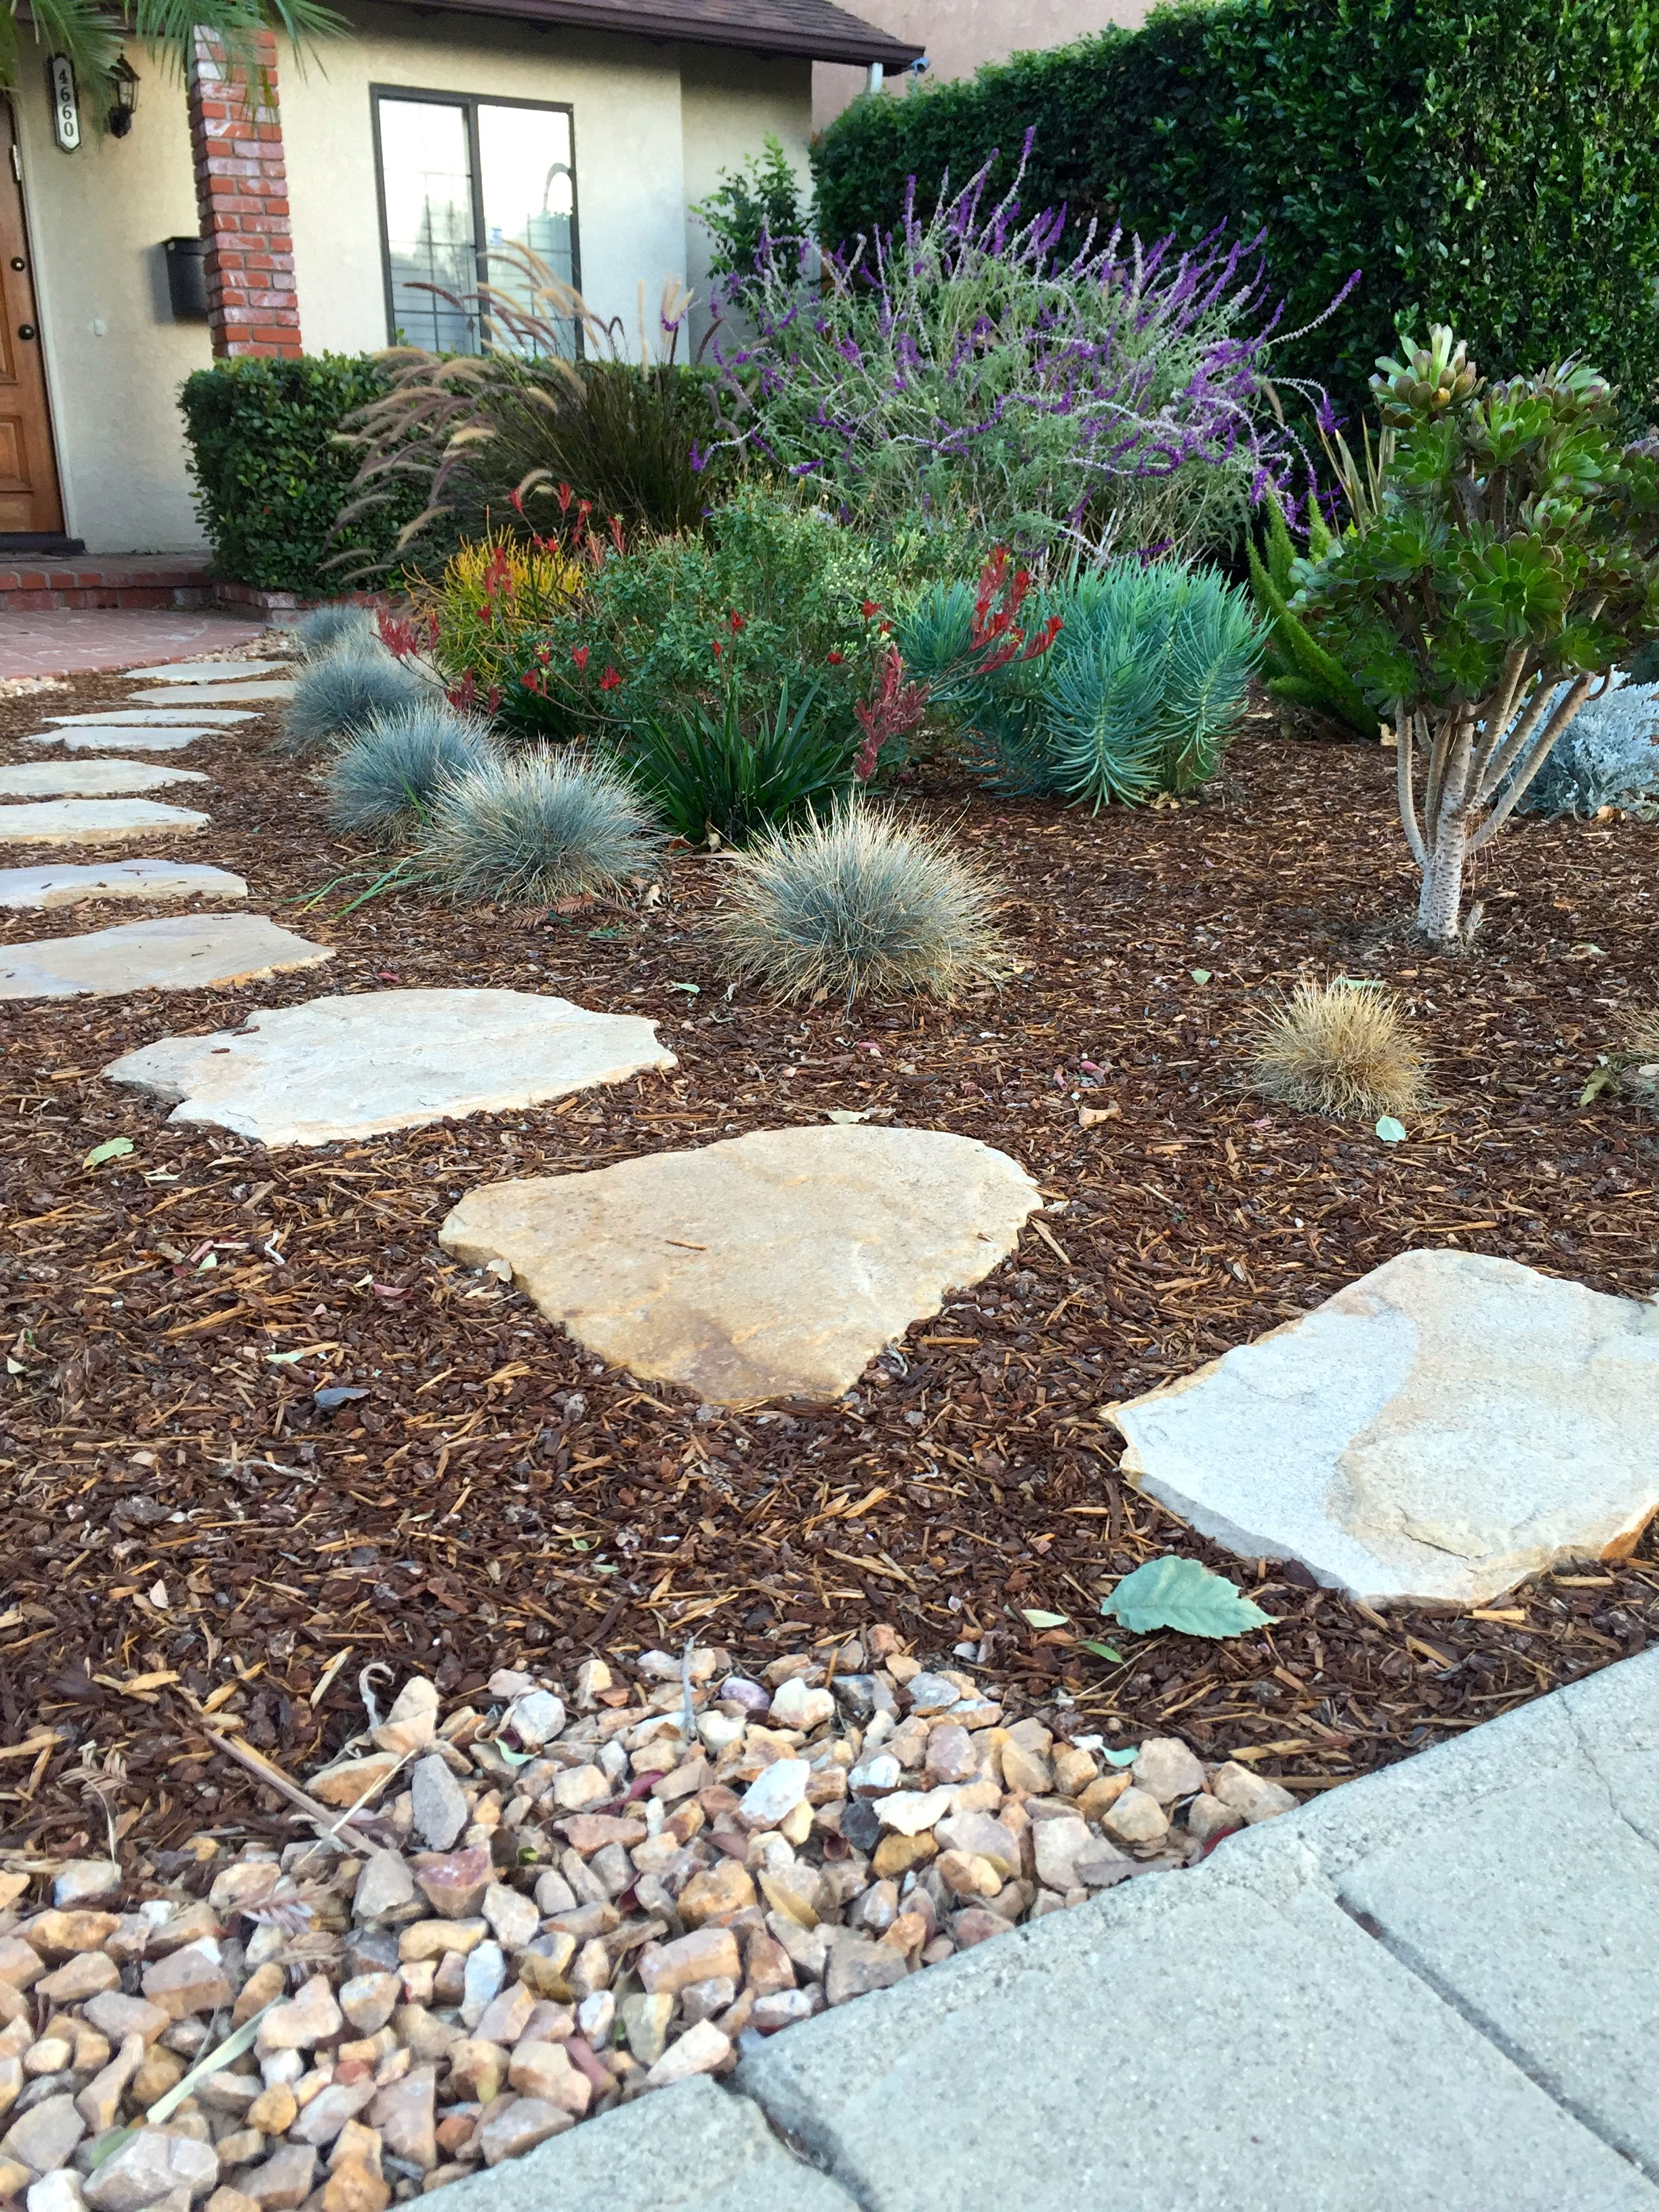 Paving stone pathway surrounded by mulch bark and for Rock landscaping ideas backyard